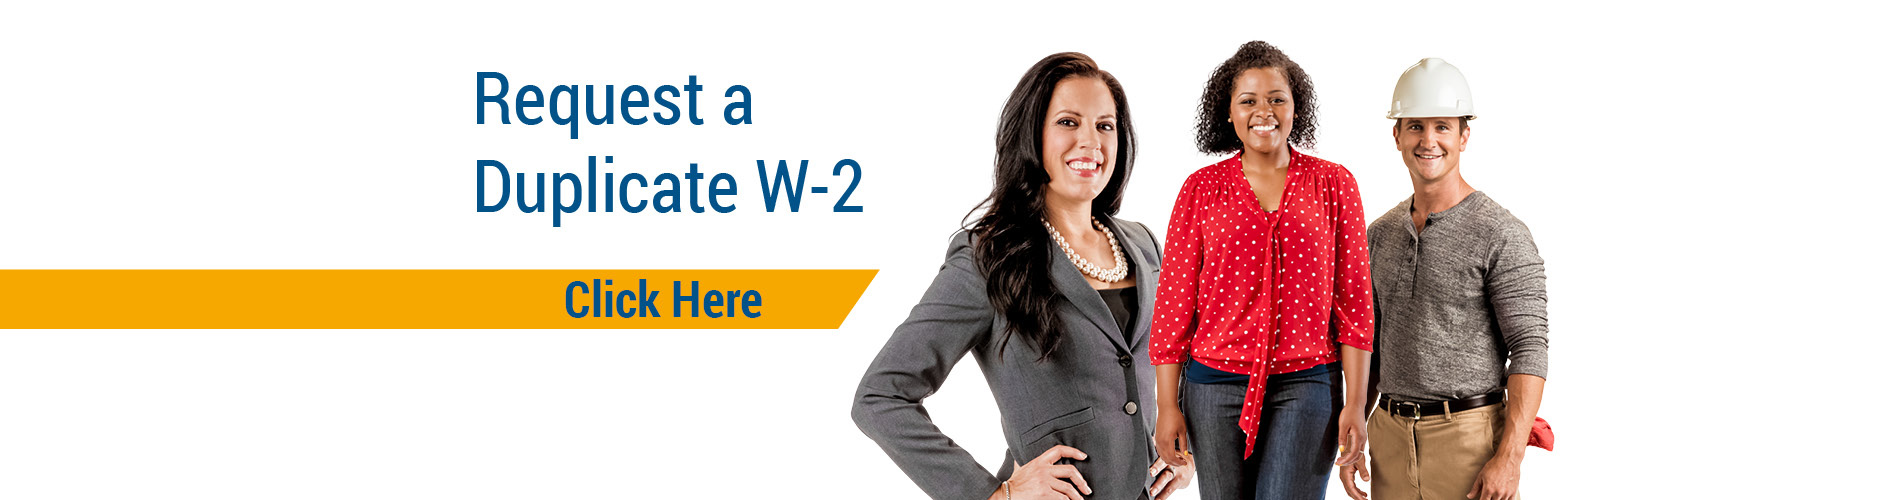 W-2 Duplicate Request Home Page Banner